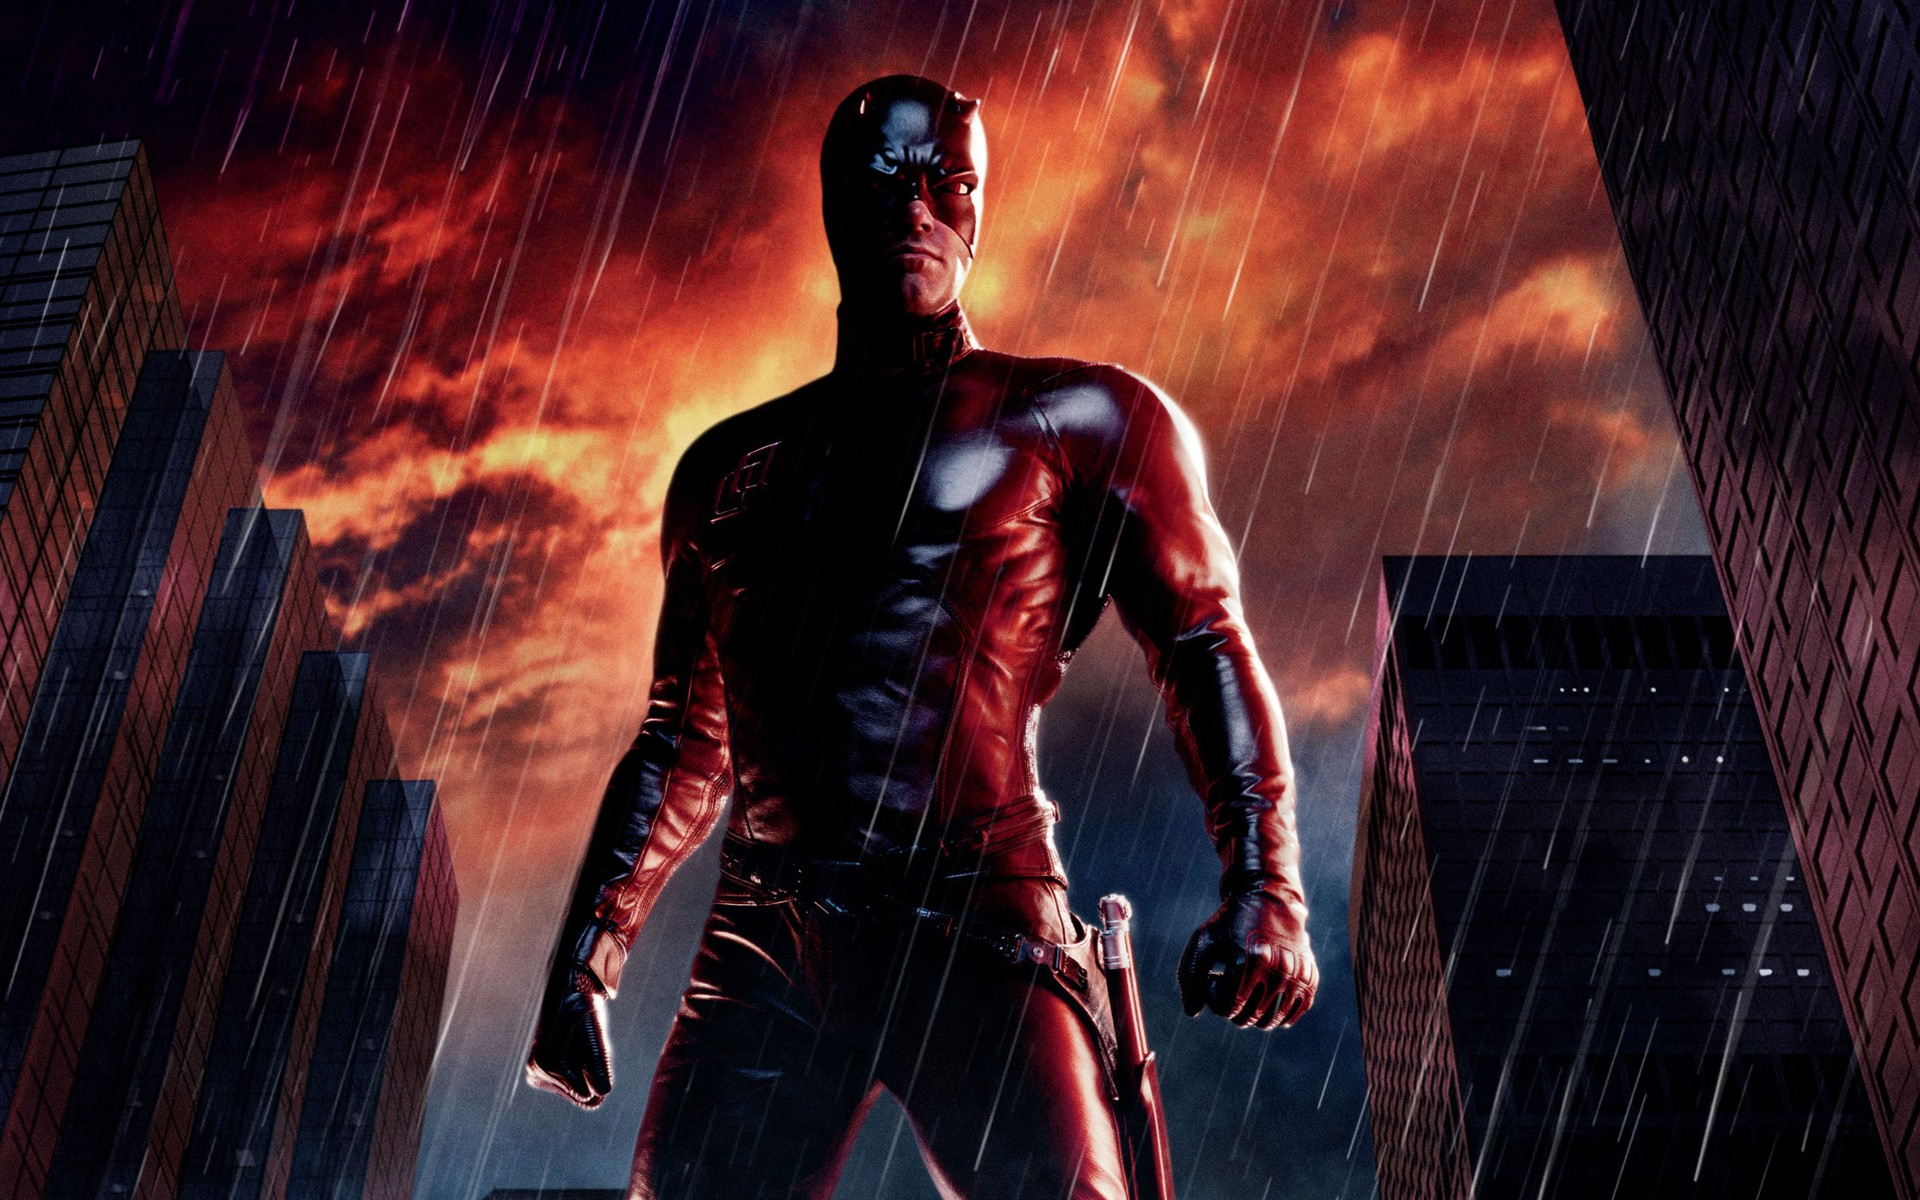 Daredevil tv show hd tv shows 4k wallpapers images - Tv series wallpaper 4k ...